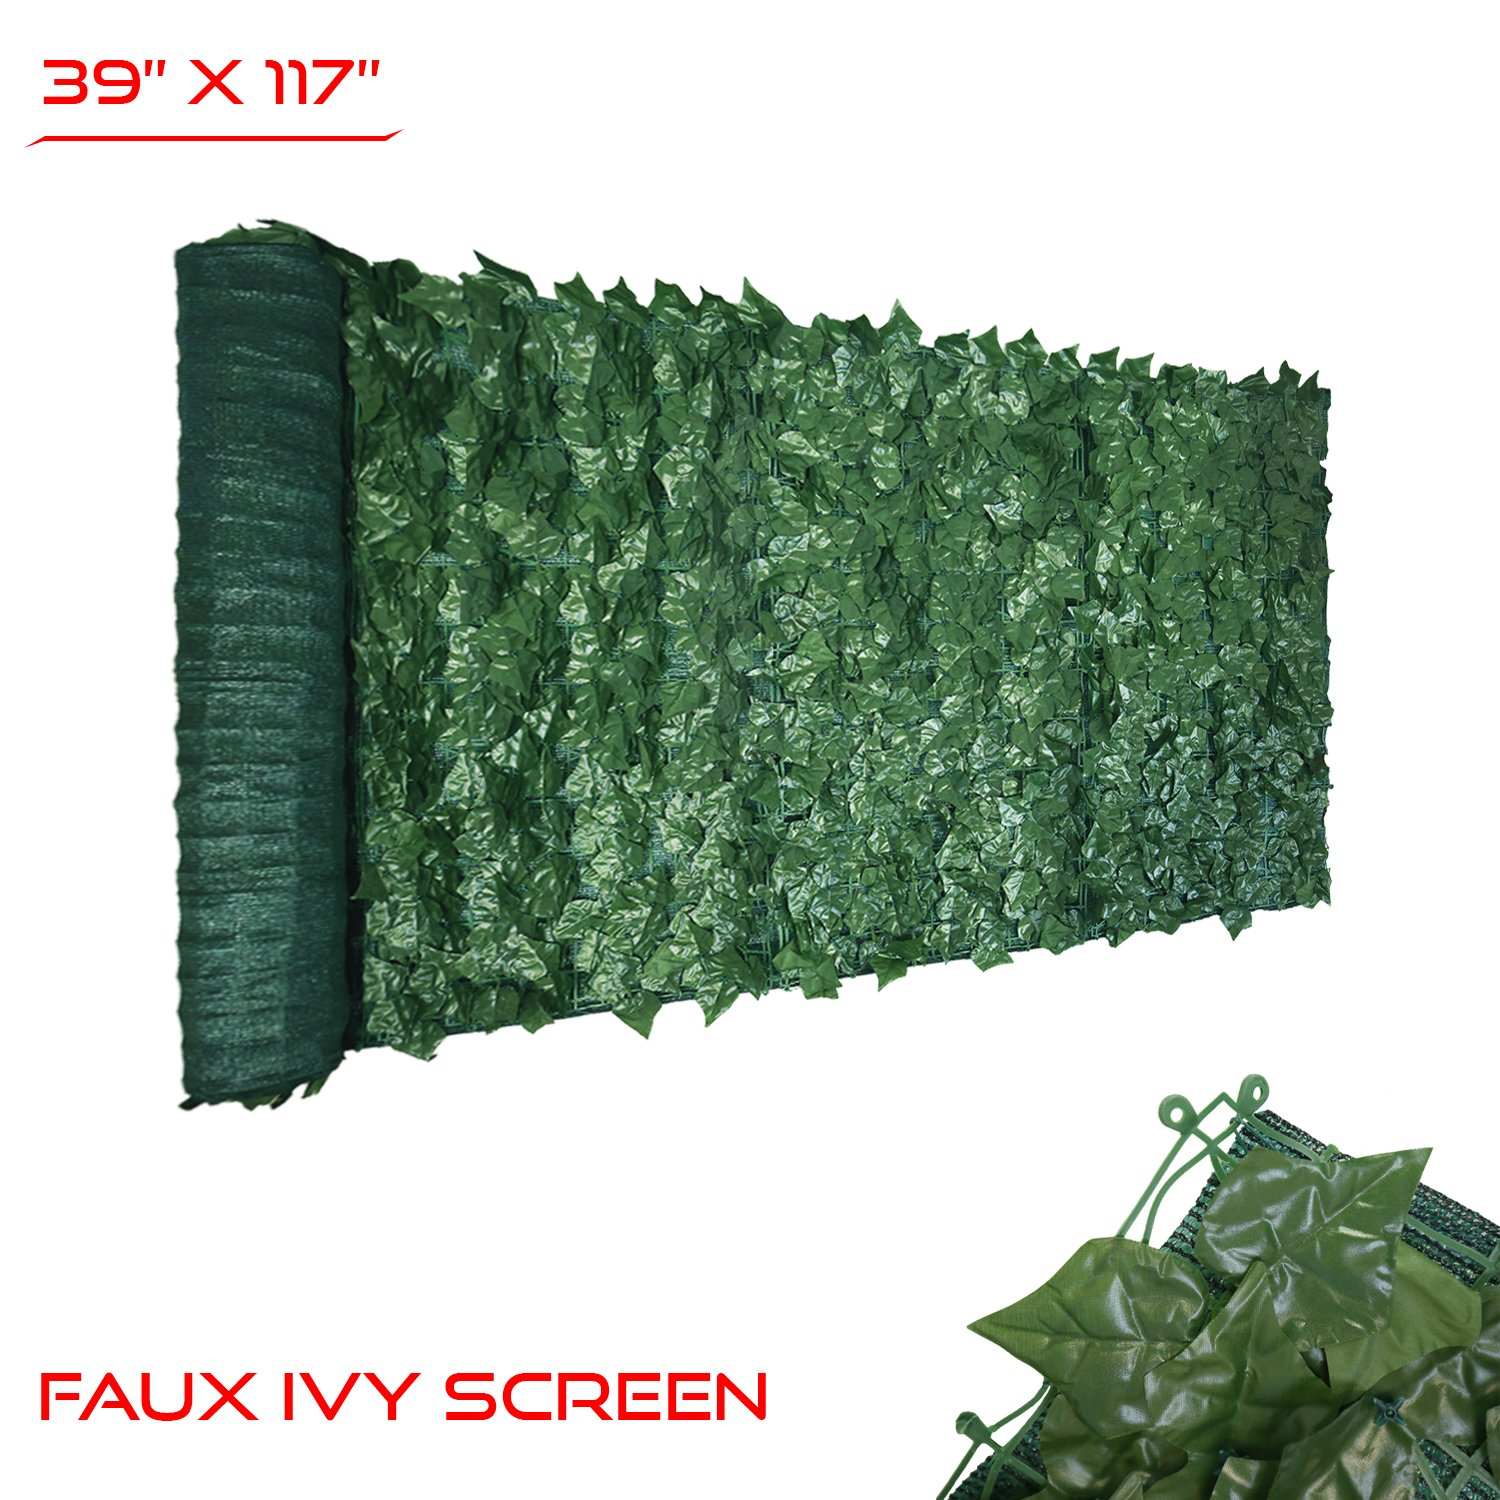 The Patio Shop 39'' x 117'' Fence Screen Faux Ivy Privacy with Mesh Back-Artificial Leaf Vine Hedge Perfect for Outdoor Décor Garden Backyard Decoration Panels Fence Cover